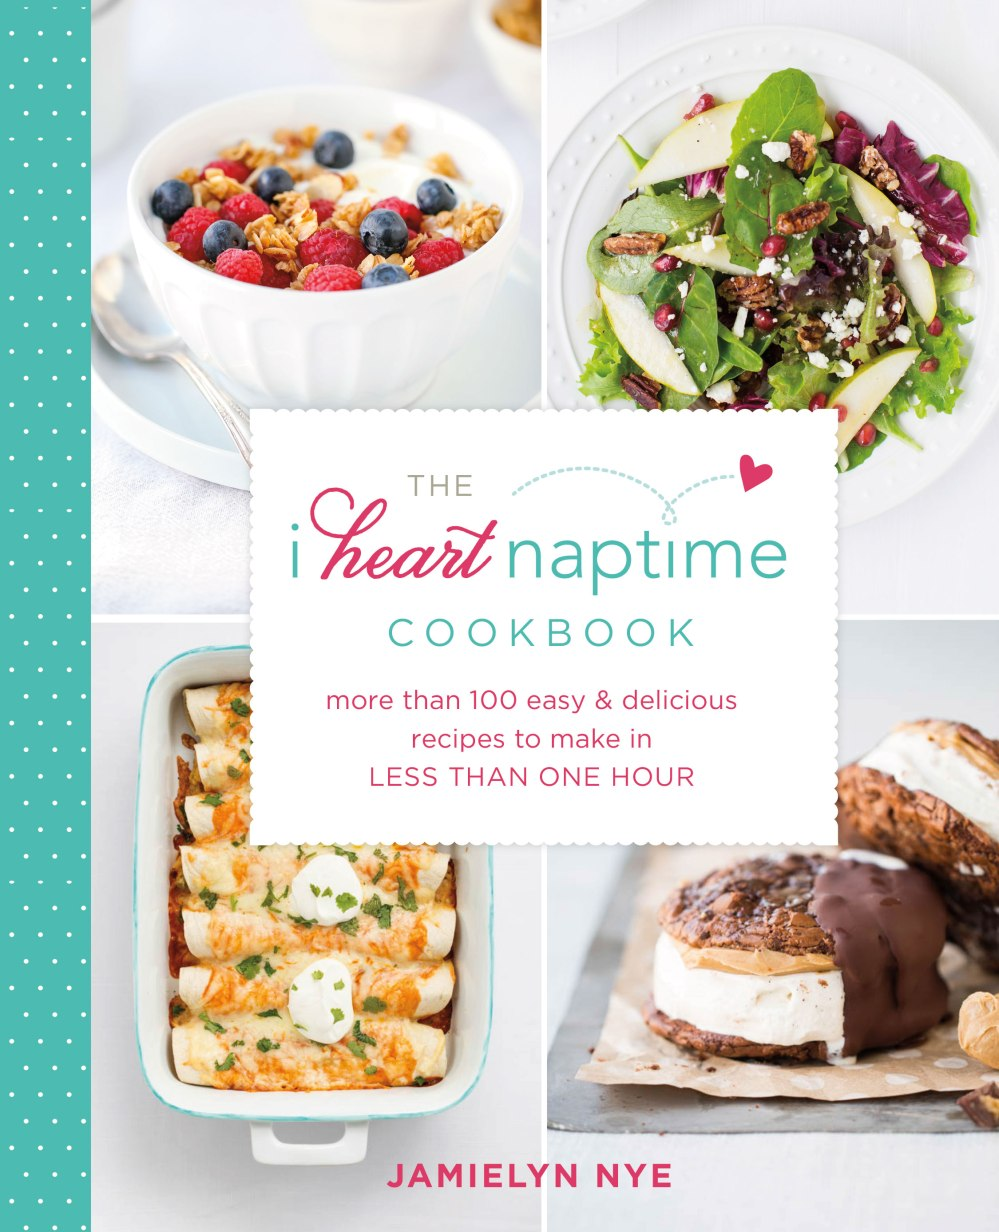 the-i-heart-naptime-cookbook-by-jamielyn-nye-cover